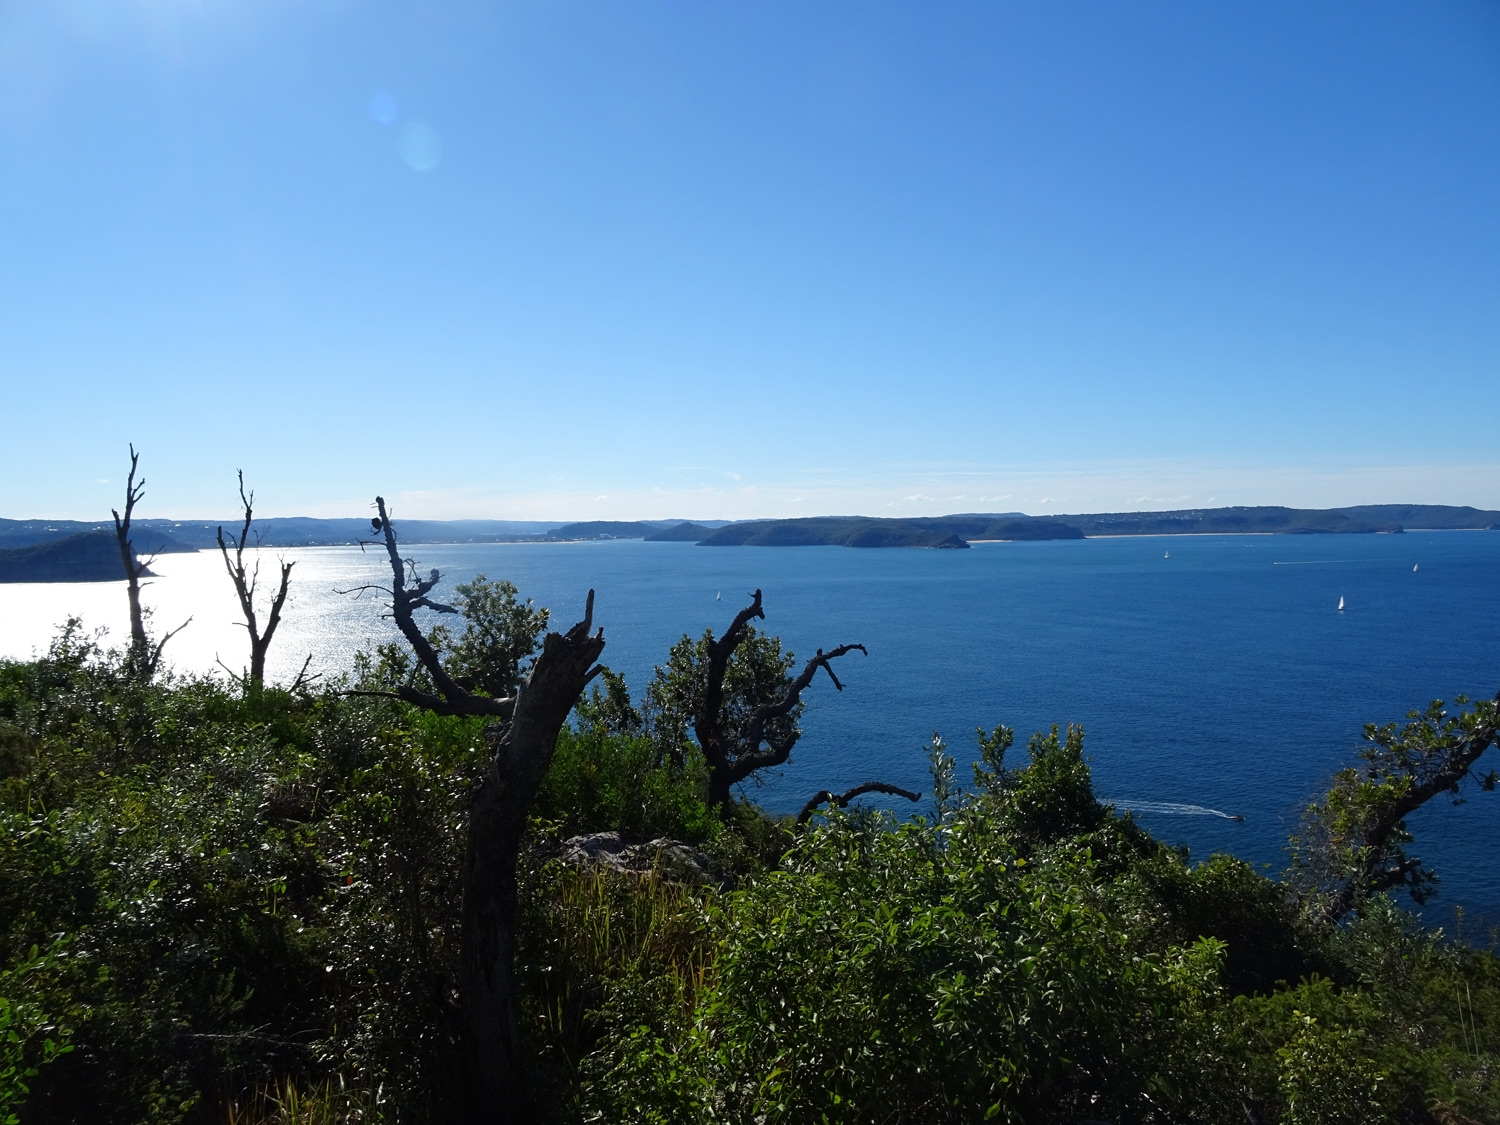 Views over Broken Bay to the Central Coast